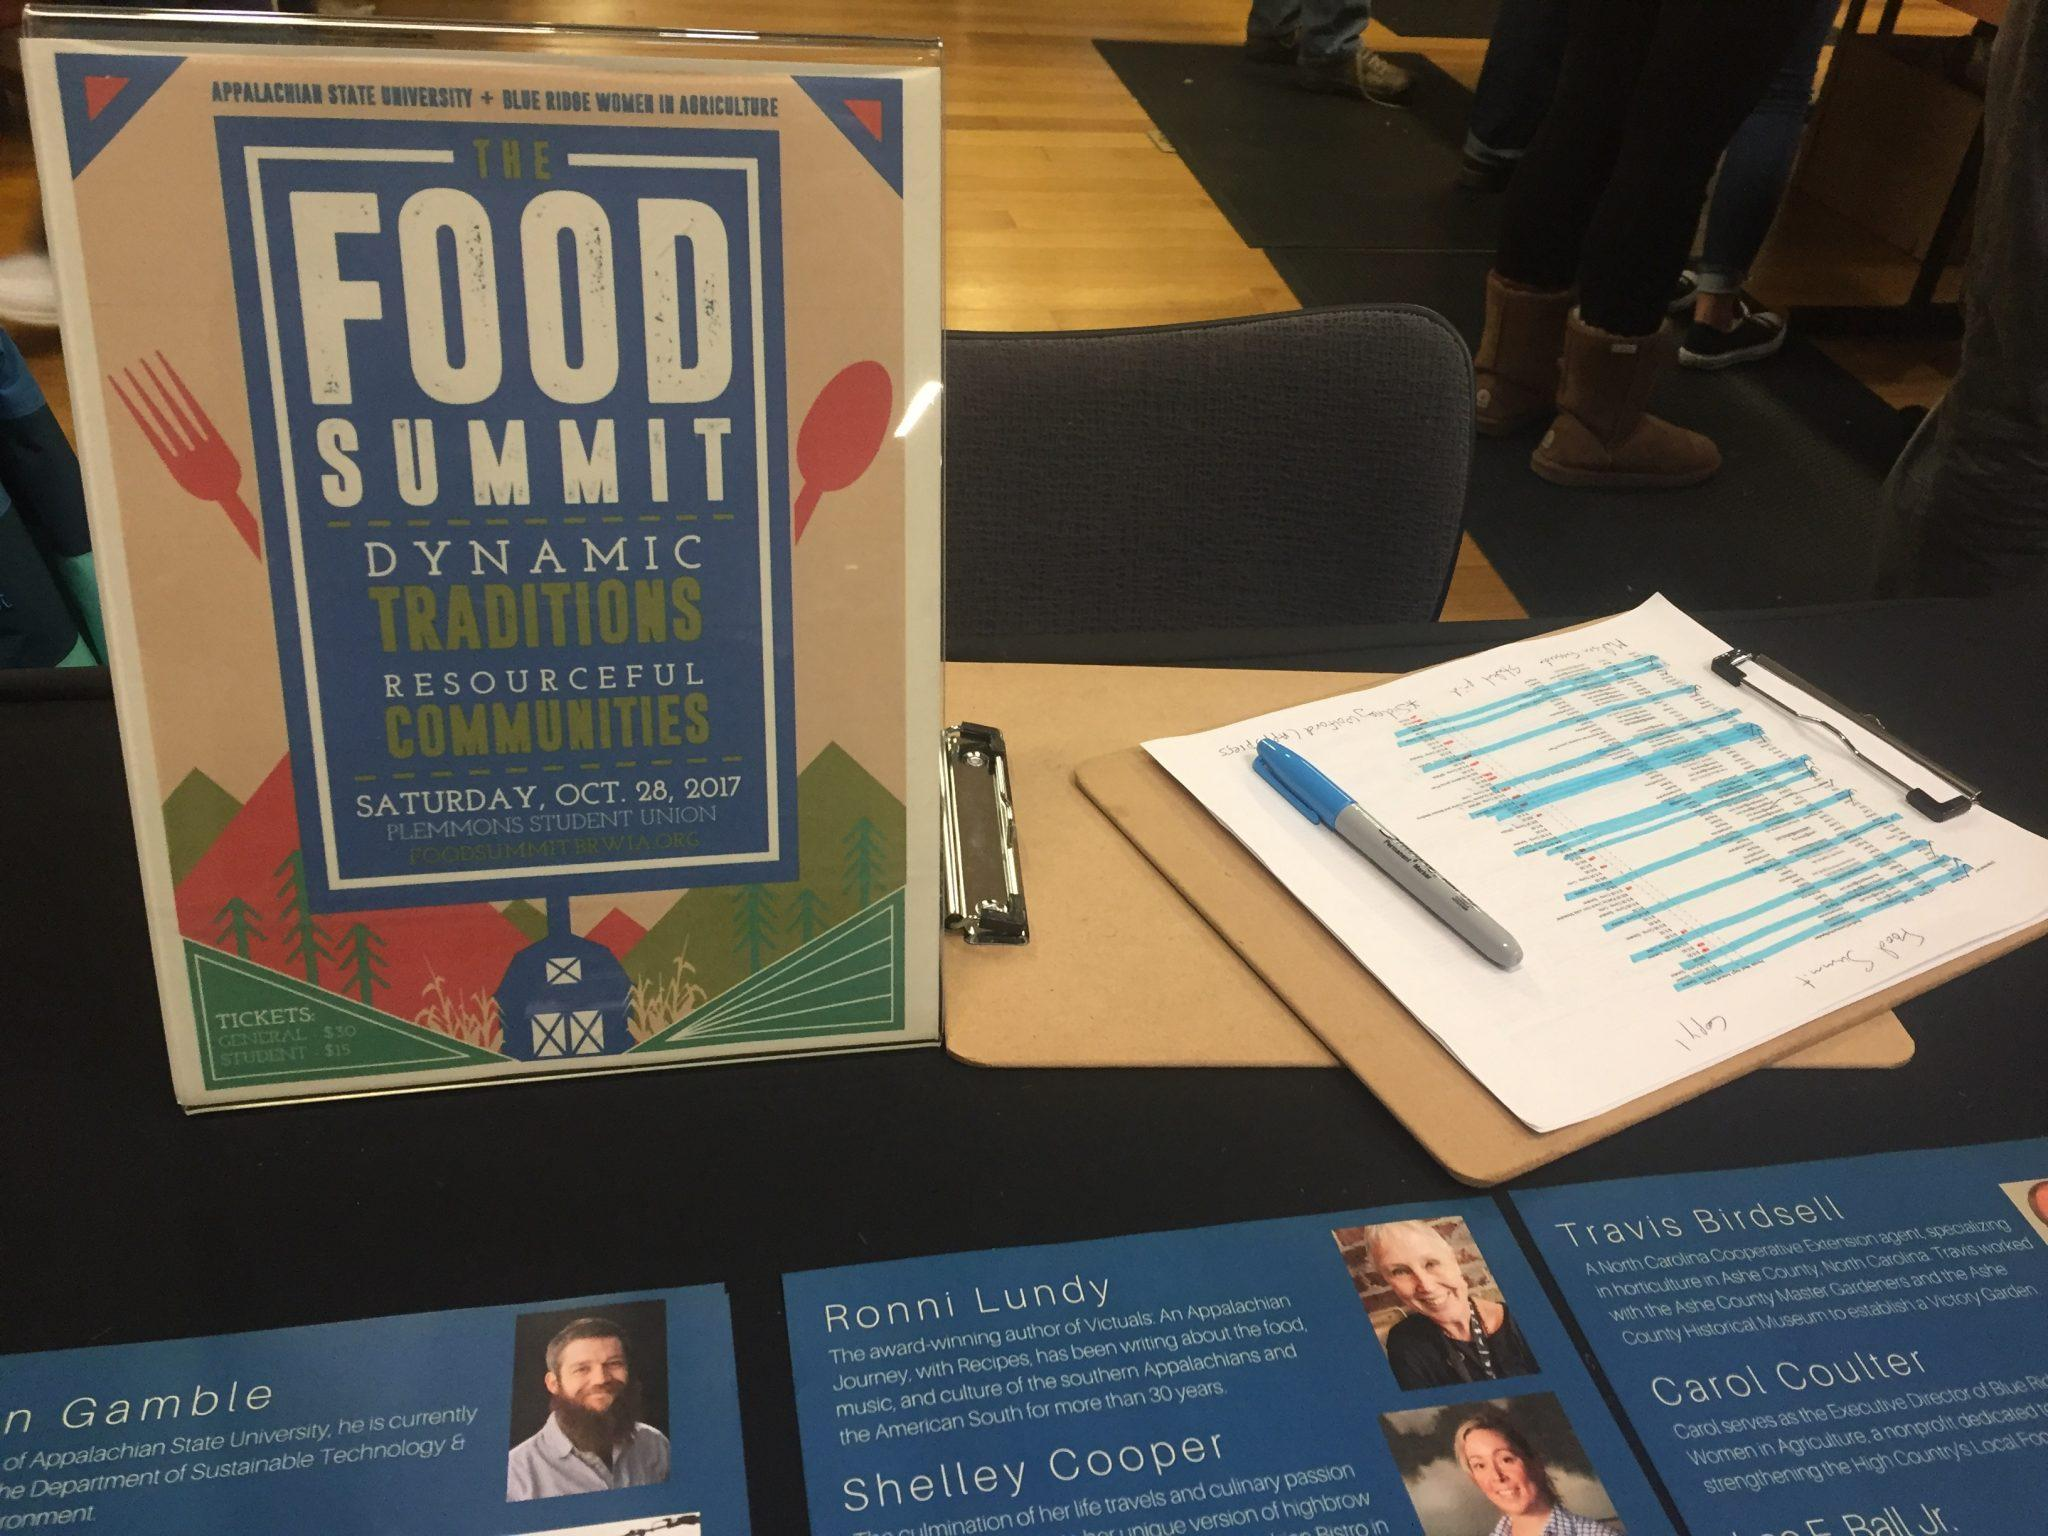 The second annual Food Summit, hosted by Appalachian State University and Blue Ridge Women in Agriculture, took place Saturday in the student union.